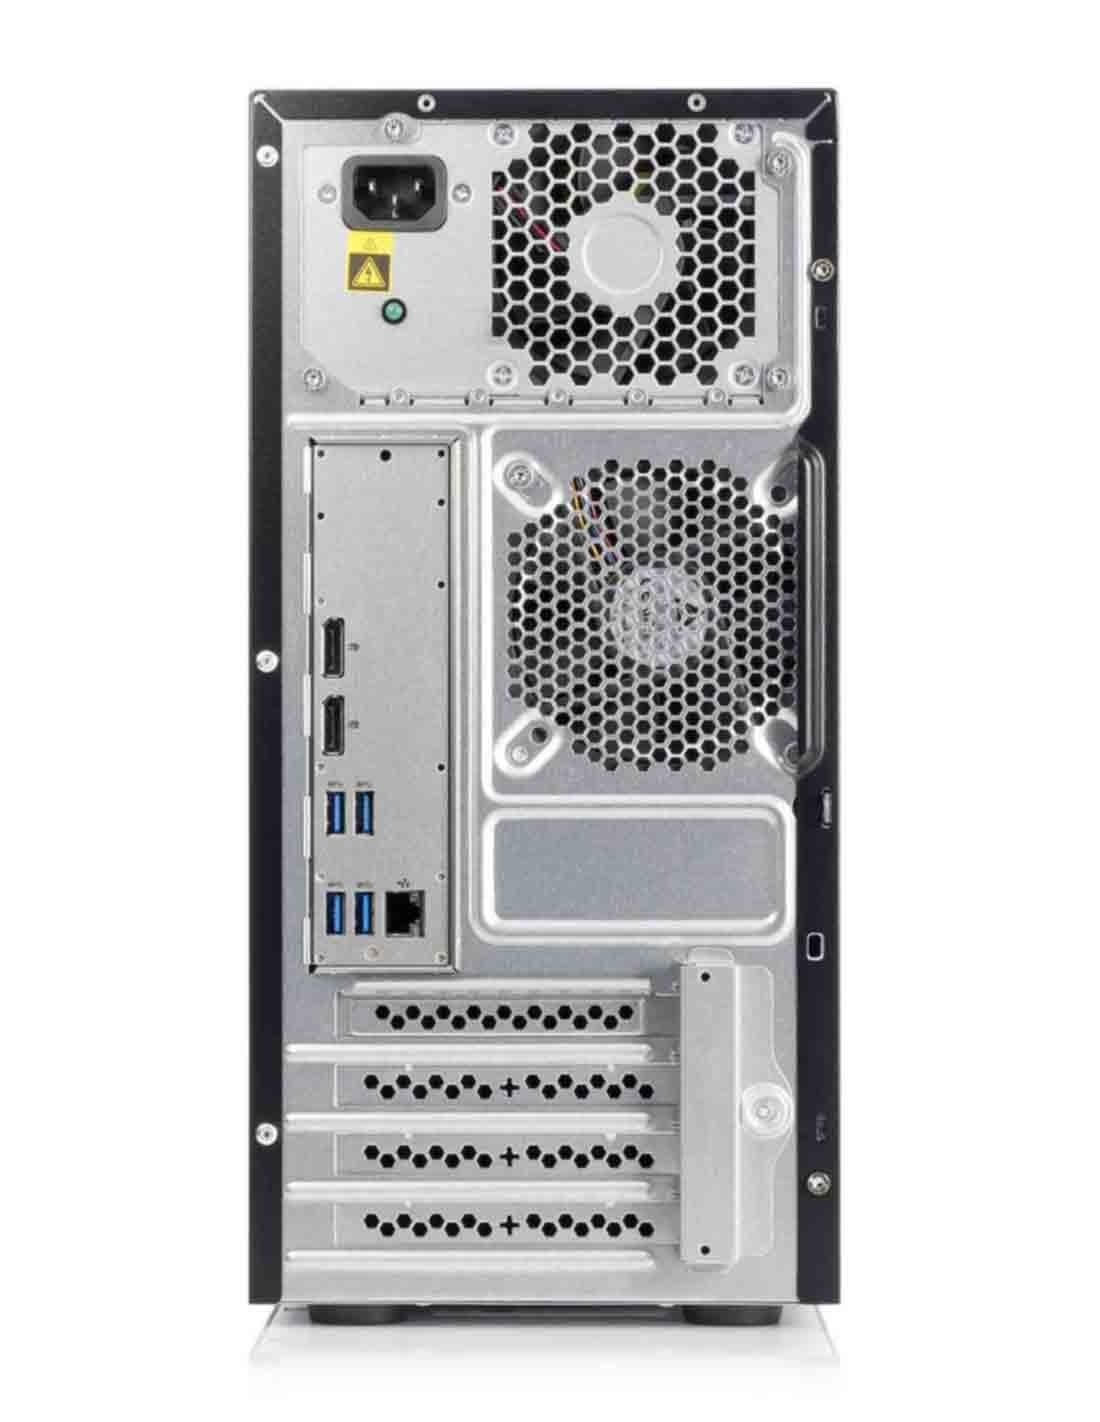 HP ProLiant ML10 Gen9 E3-1225v5 Server is Powerful and Secure